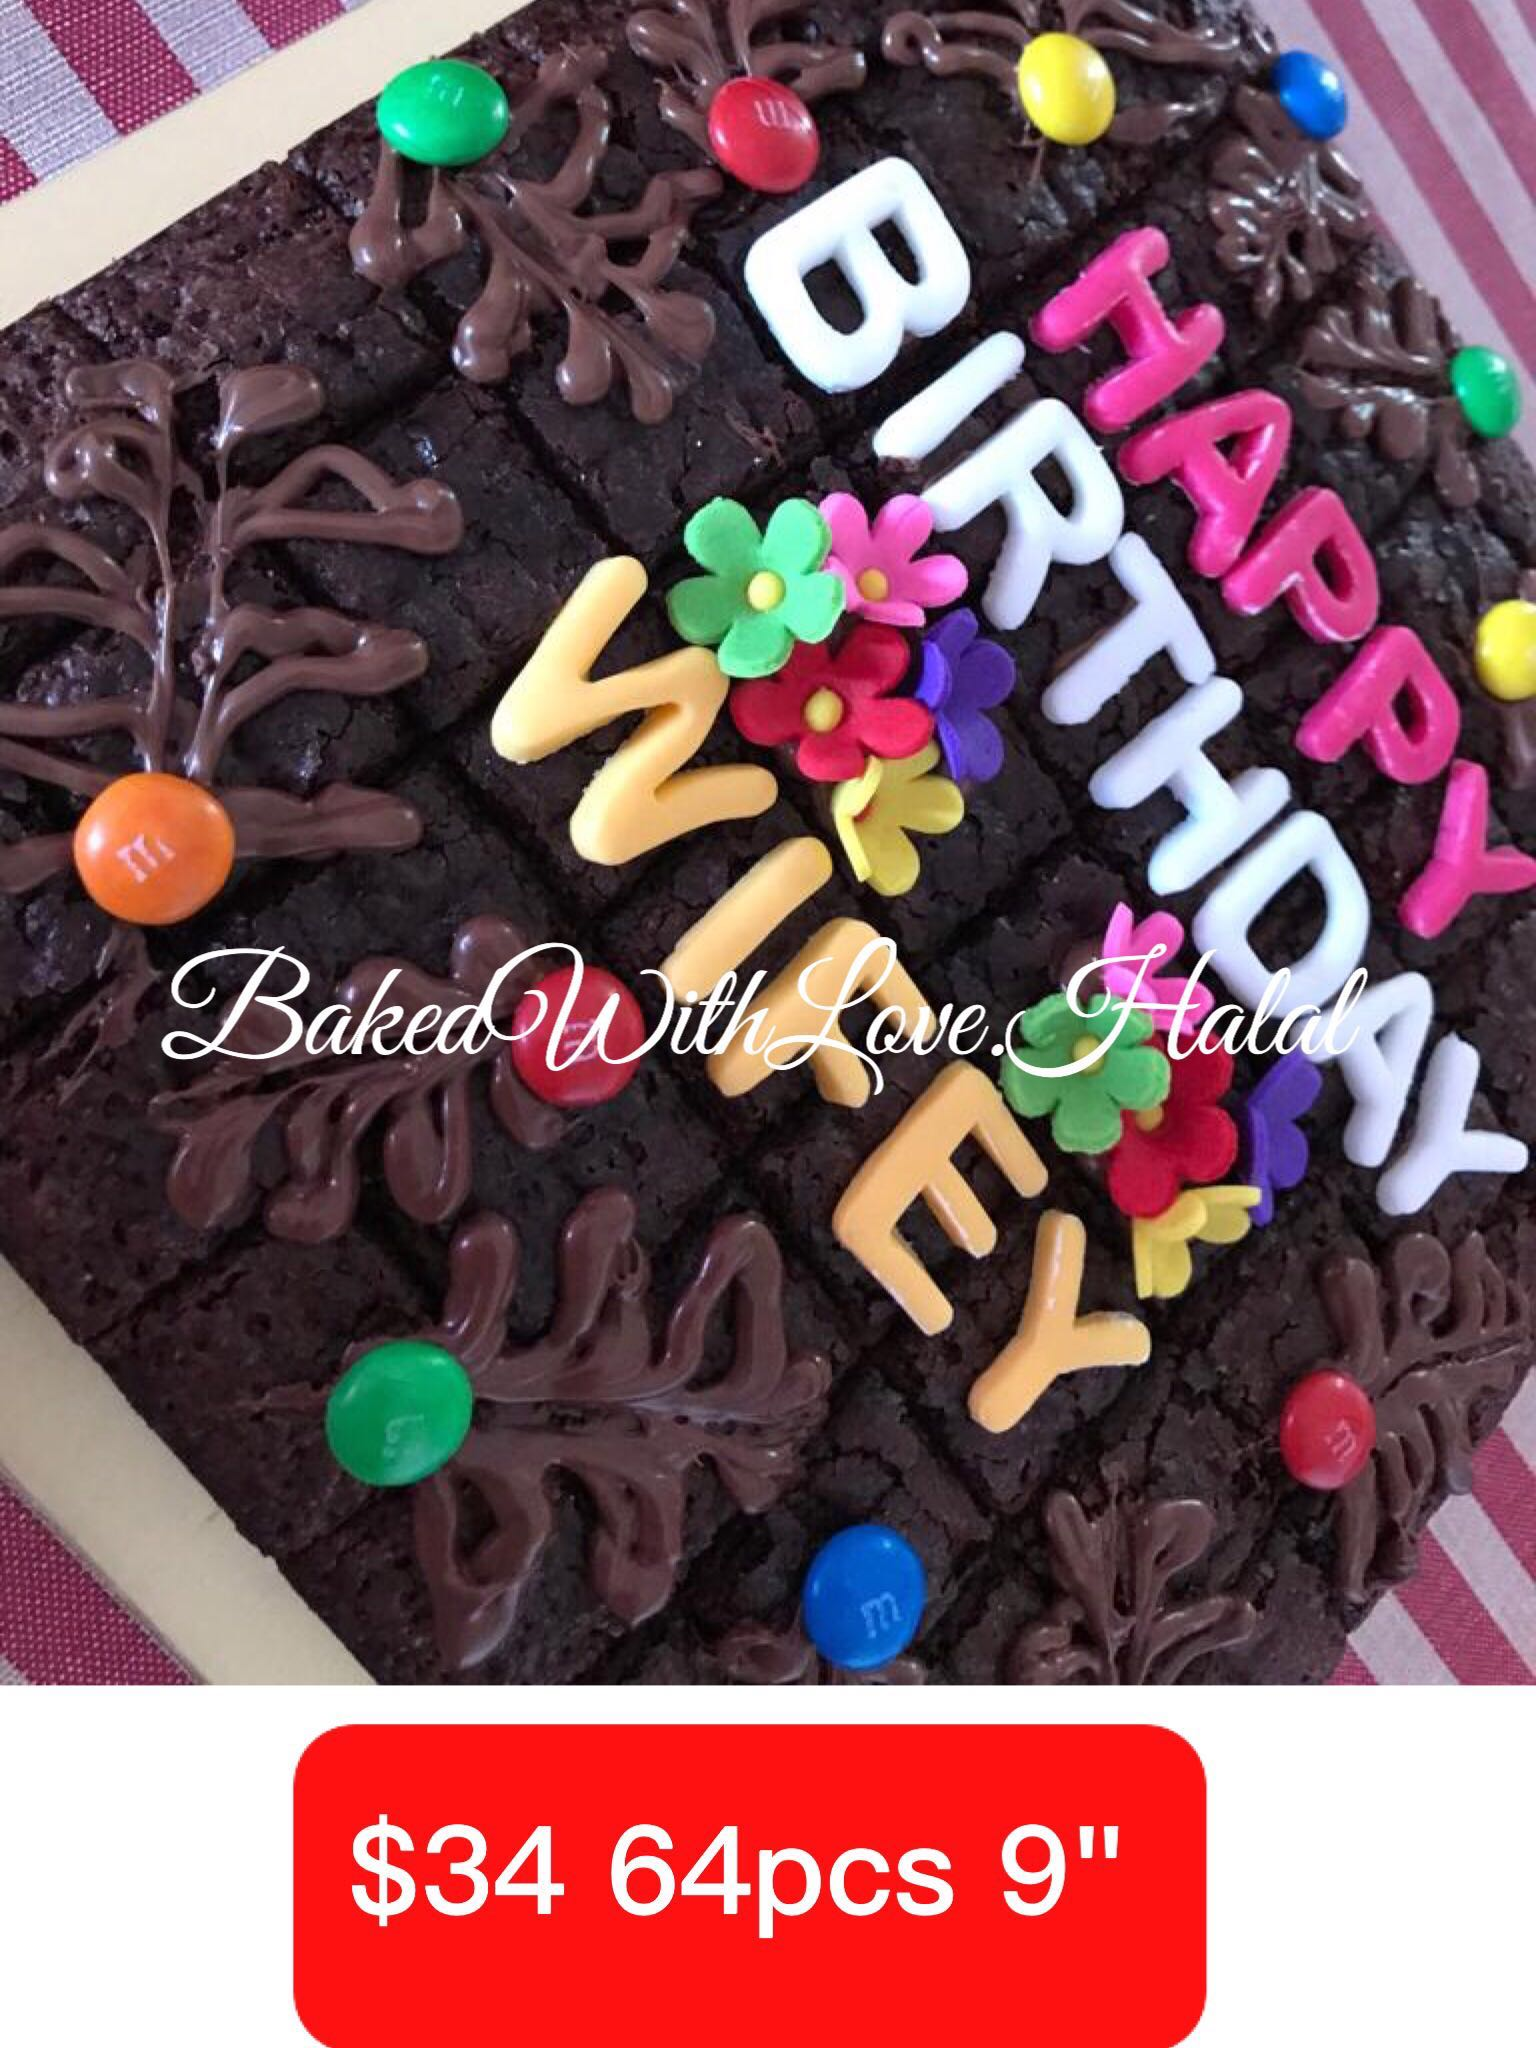 9 Brownies Food Drinks Baked Goods On Carousell